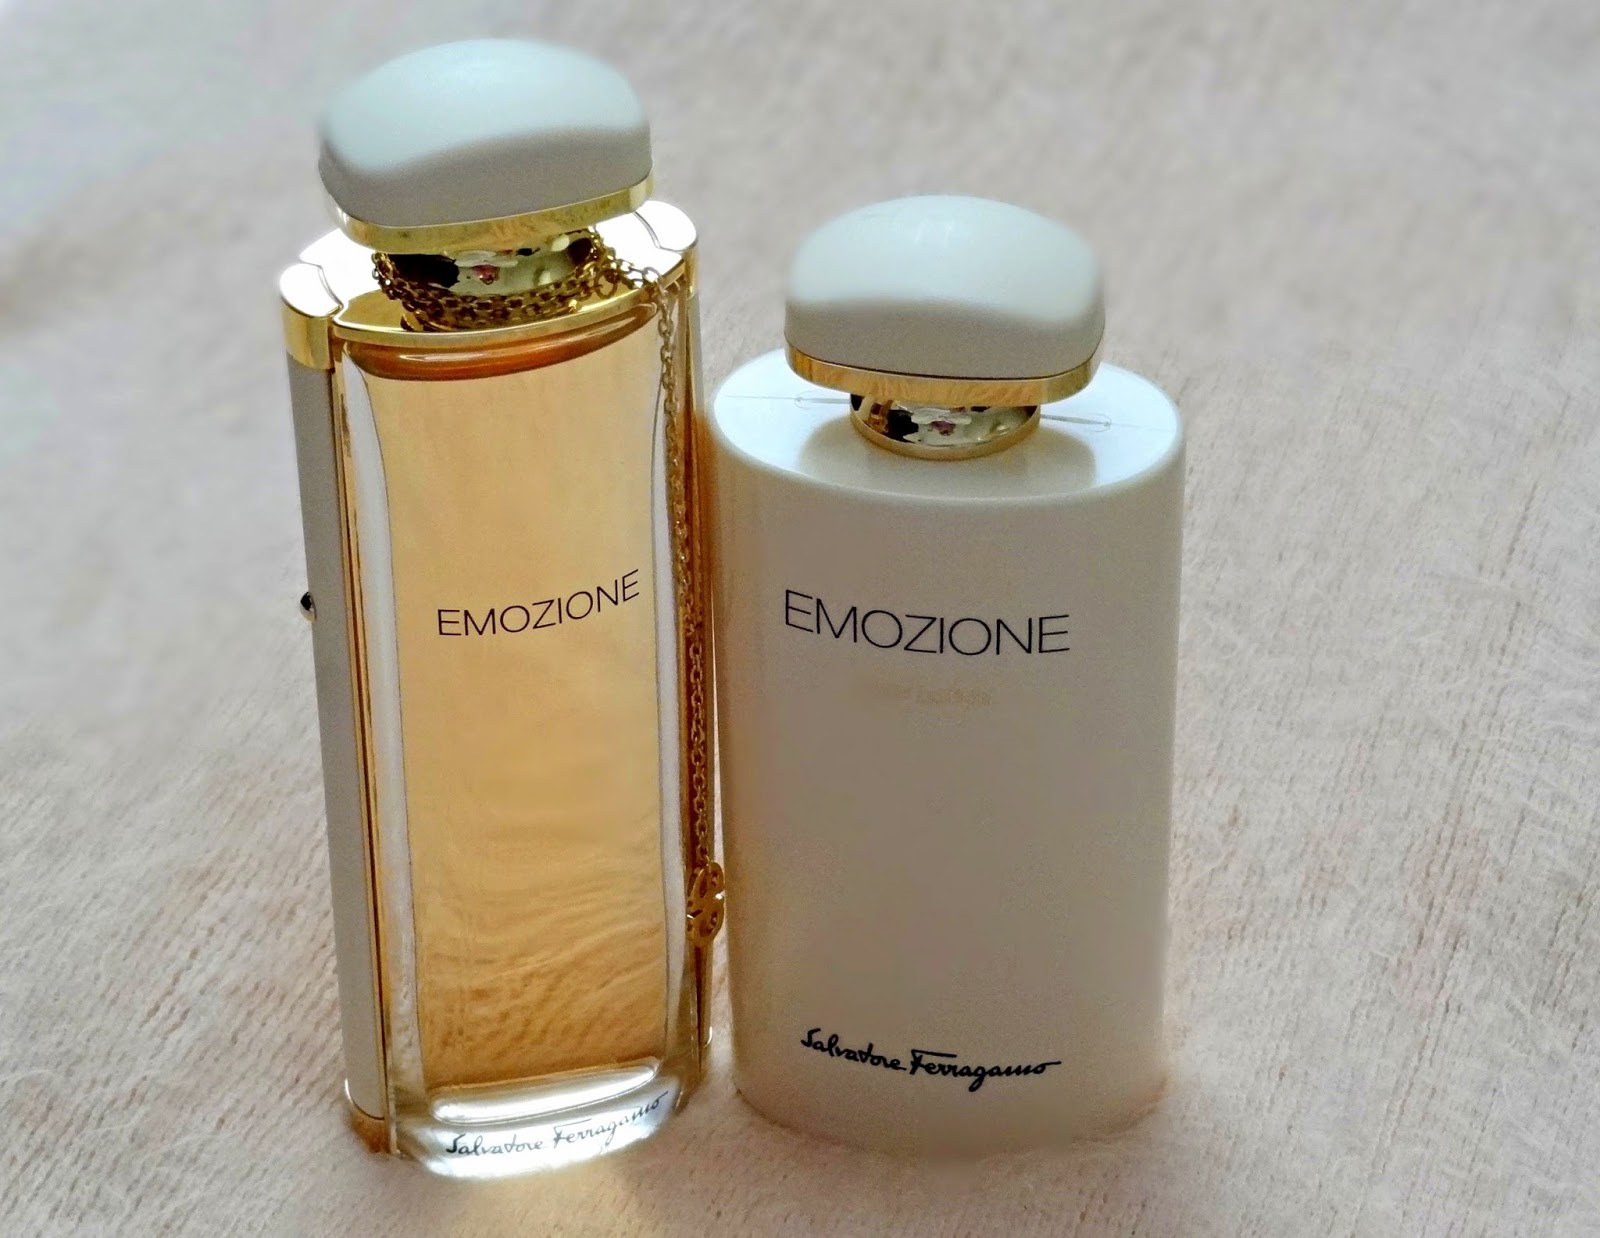 Salvatore Ferragamo Emozione Eau de Parfum and Body Lotion